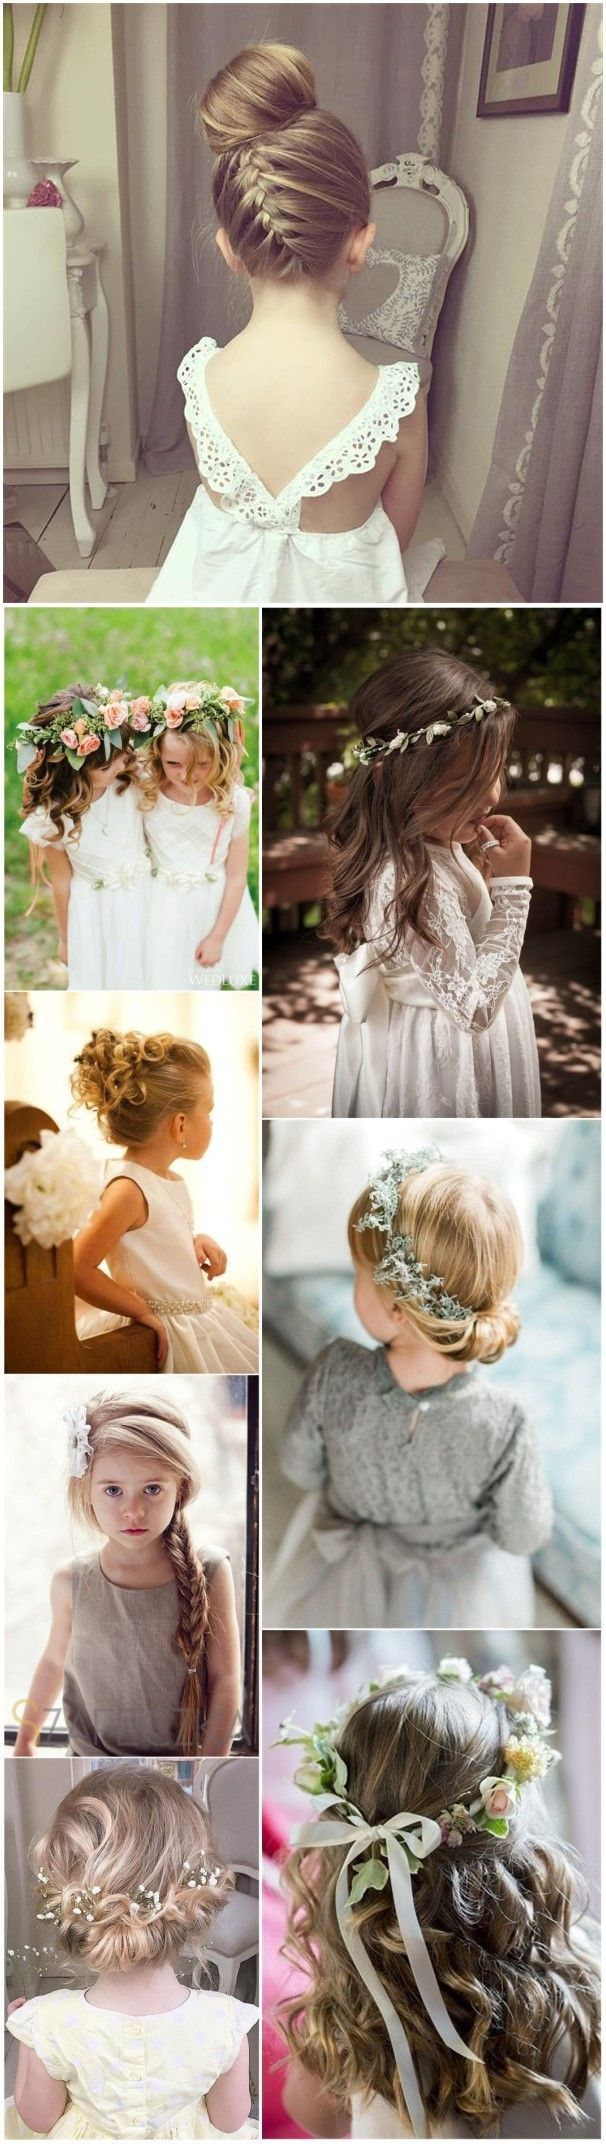 Coiffure mariage : Flower Girls » 22 Adorable Flower Girl Hairstyles to Get Inspired » ❤️ S…